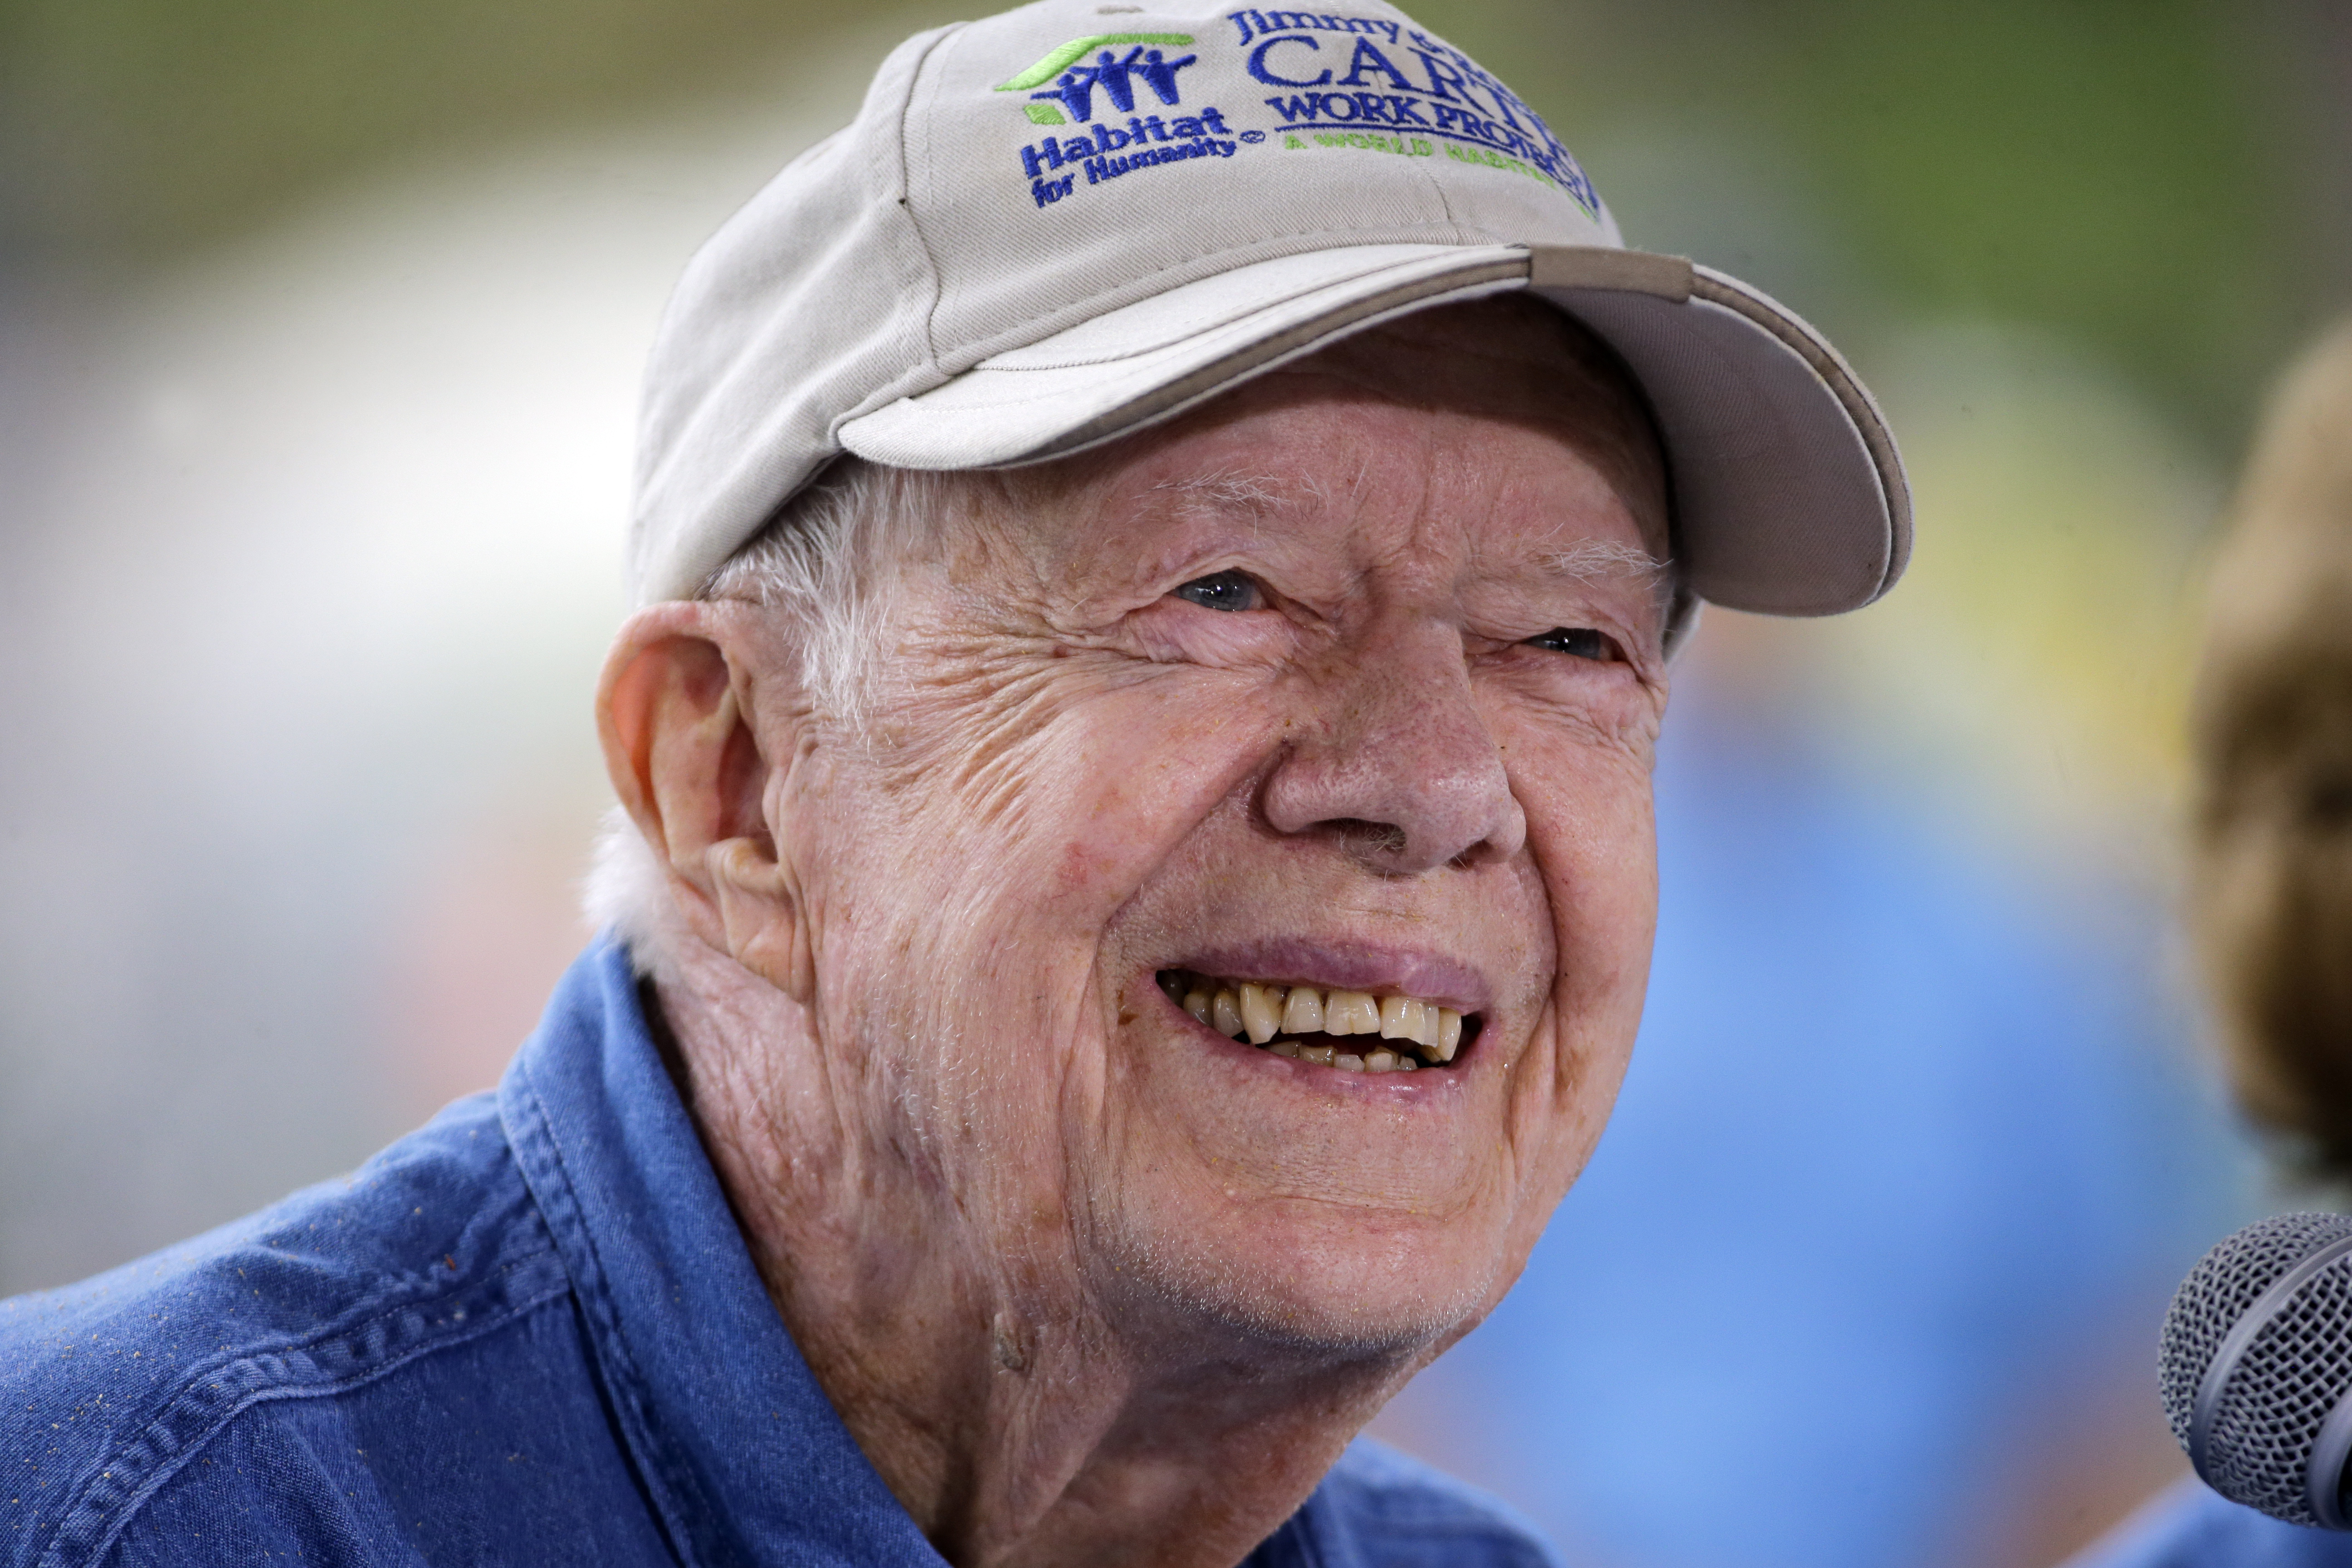 Does any one know about jimmy carter?